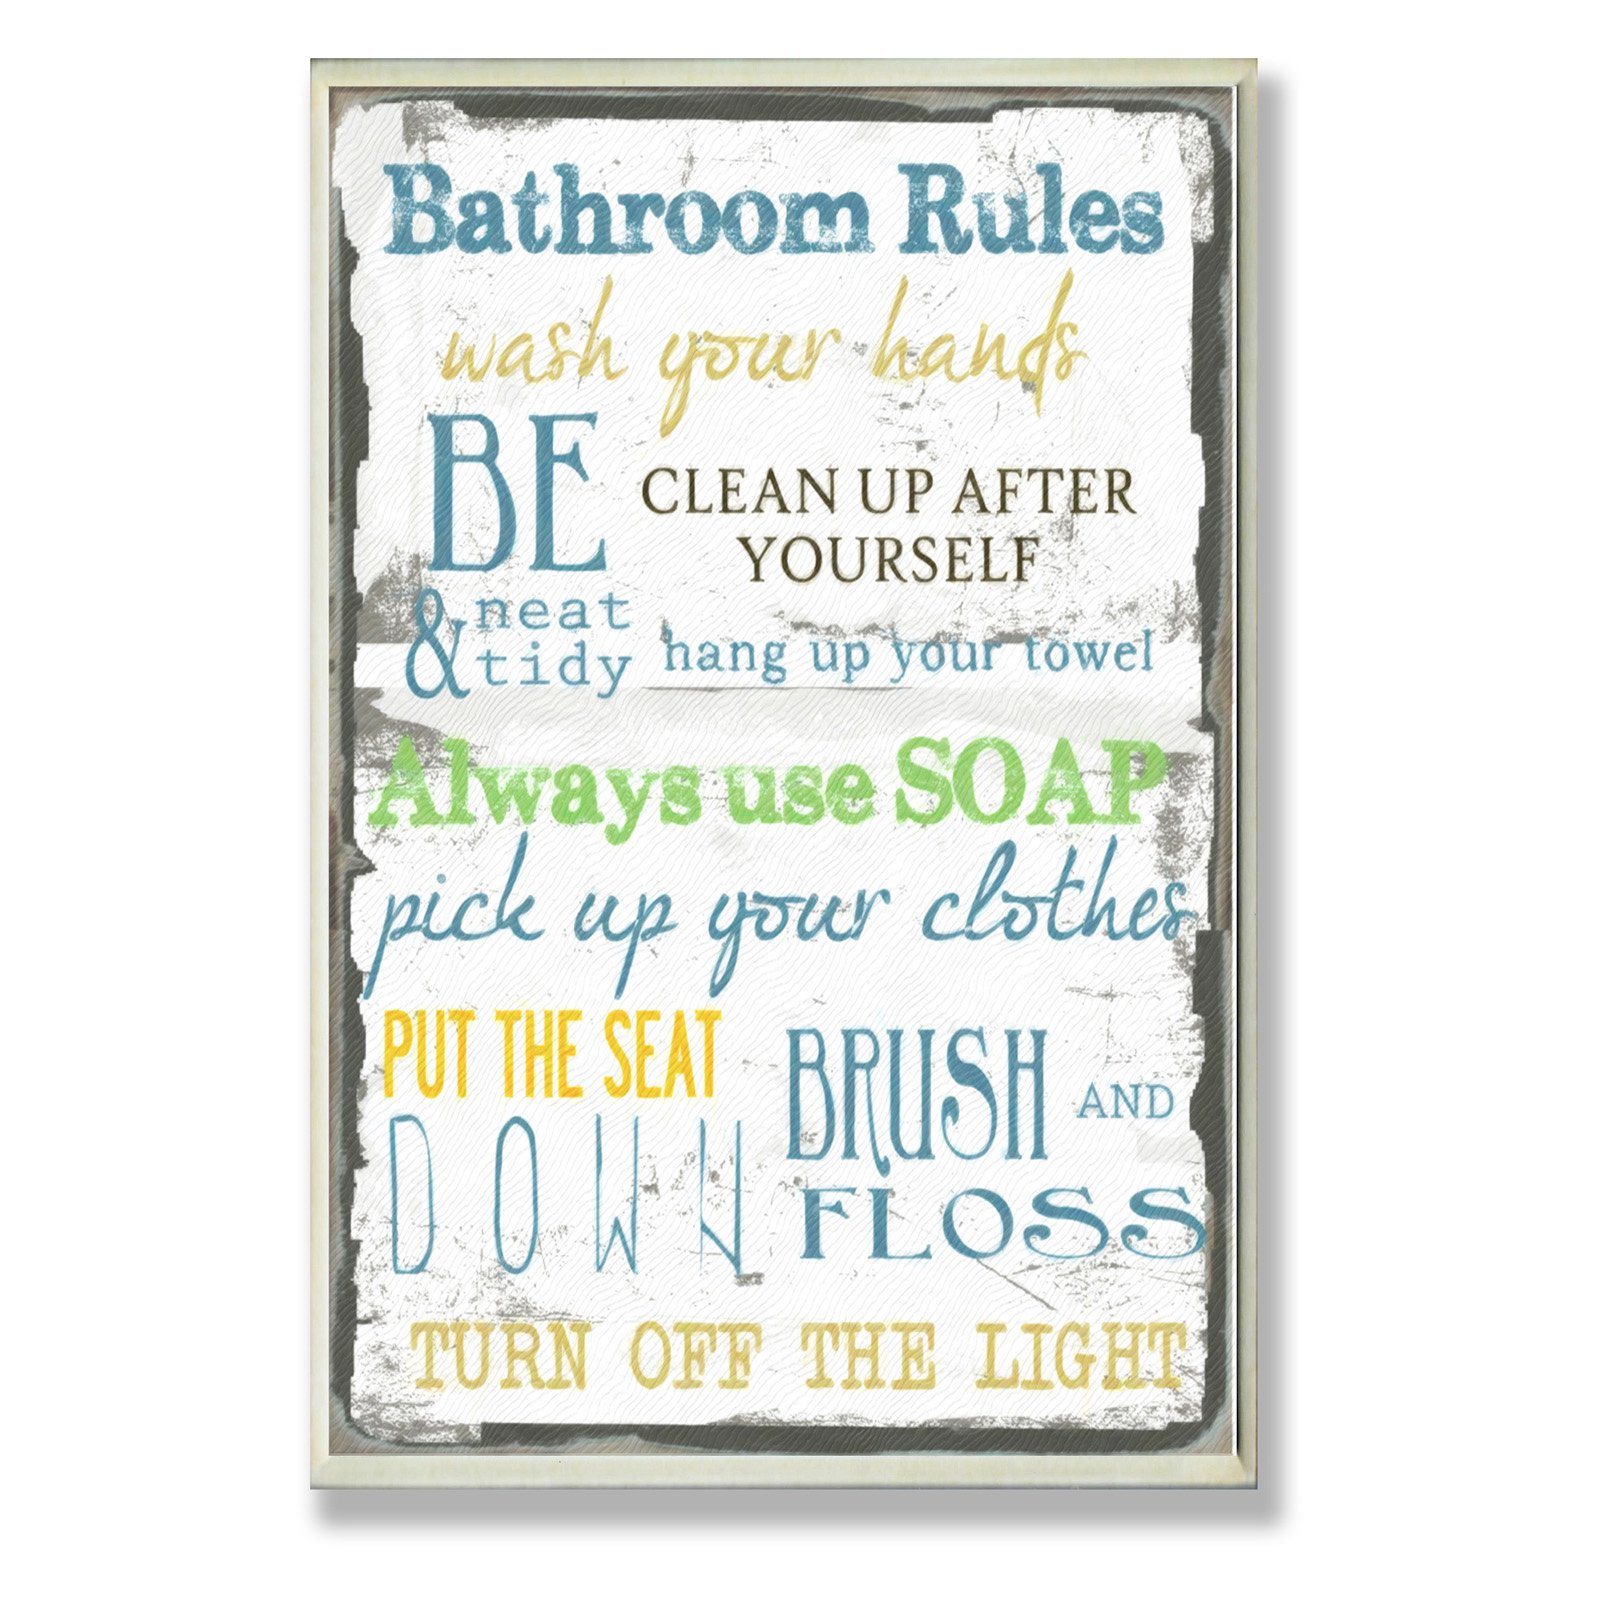 Bathroom Rules Typography Bathroom Wall Plaque by Stupell Industries